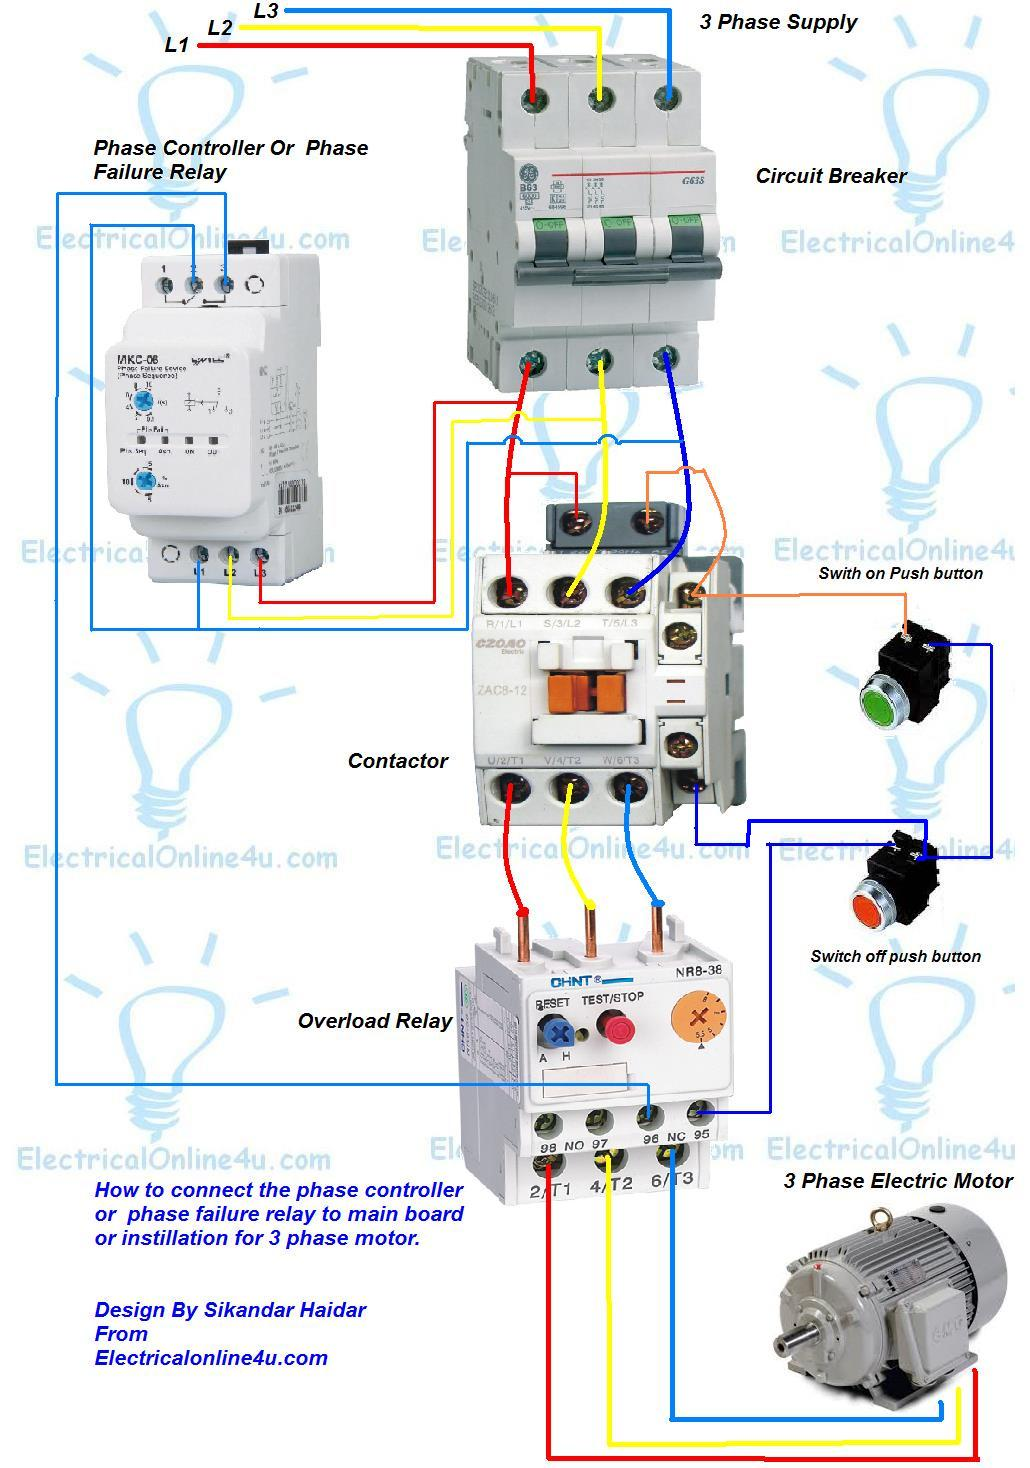 Phase%2Bfailure%2Brelay%2B %2Bphase%2Bcontroller%2Binstilaion%2Bin%2B3%2Bphase%2BMain%2Bboard%2Bor%2Bfor%2B3%2Bphase%2Bmotor phase controller wiring phase failure relay diagram electrical electrical contactor wiring diagram at gsmportal.co